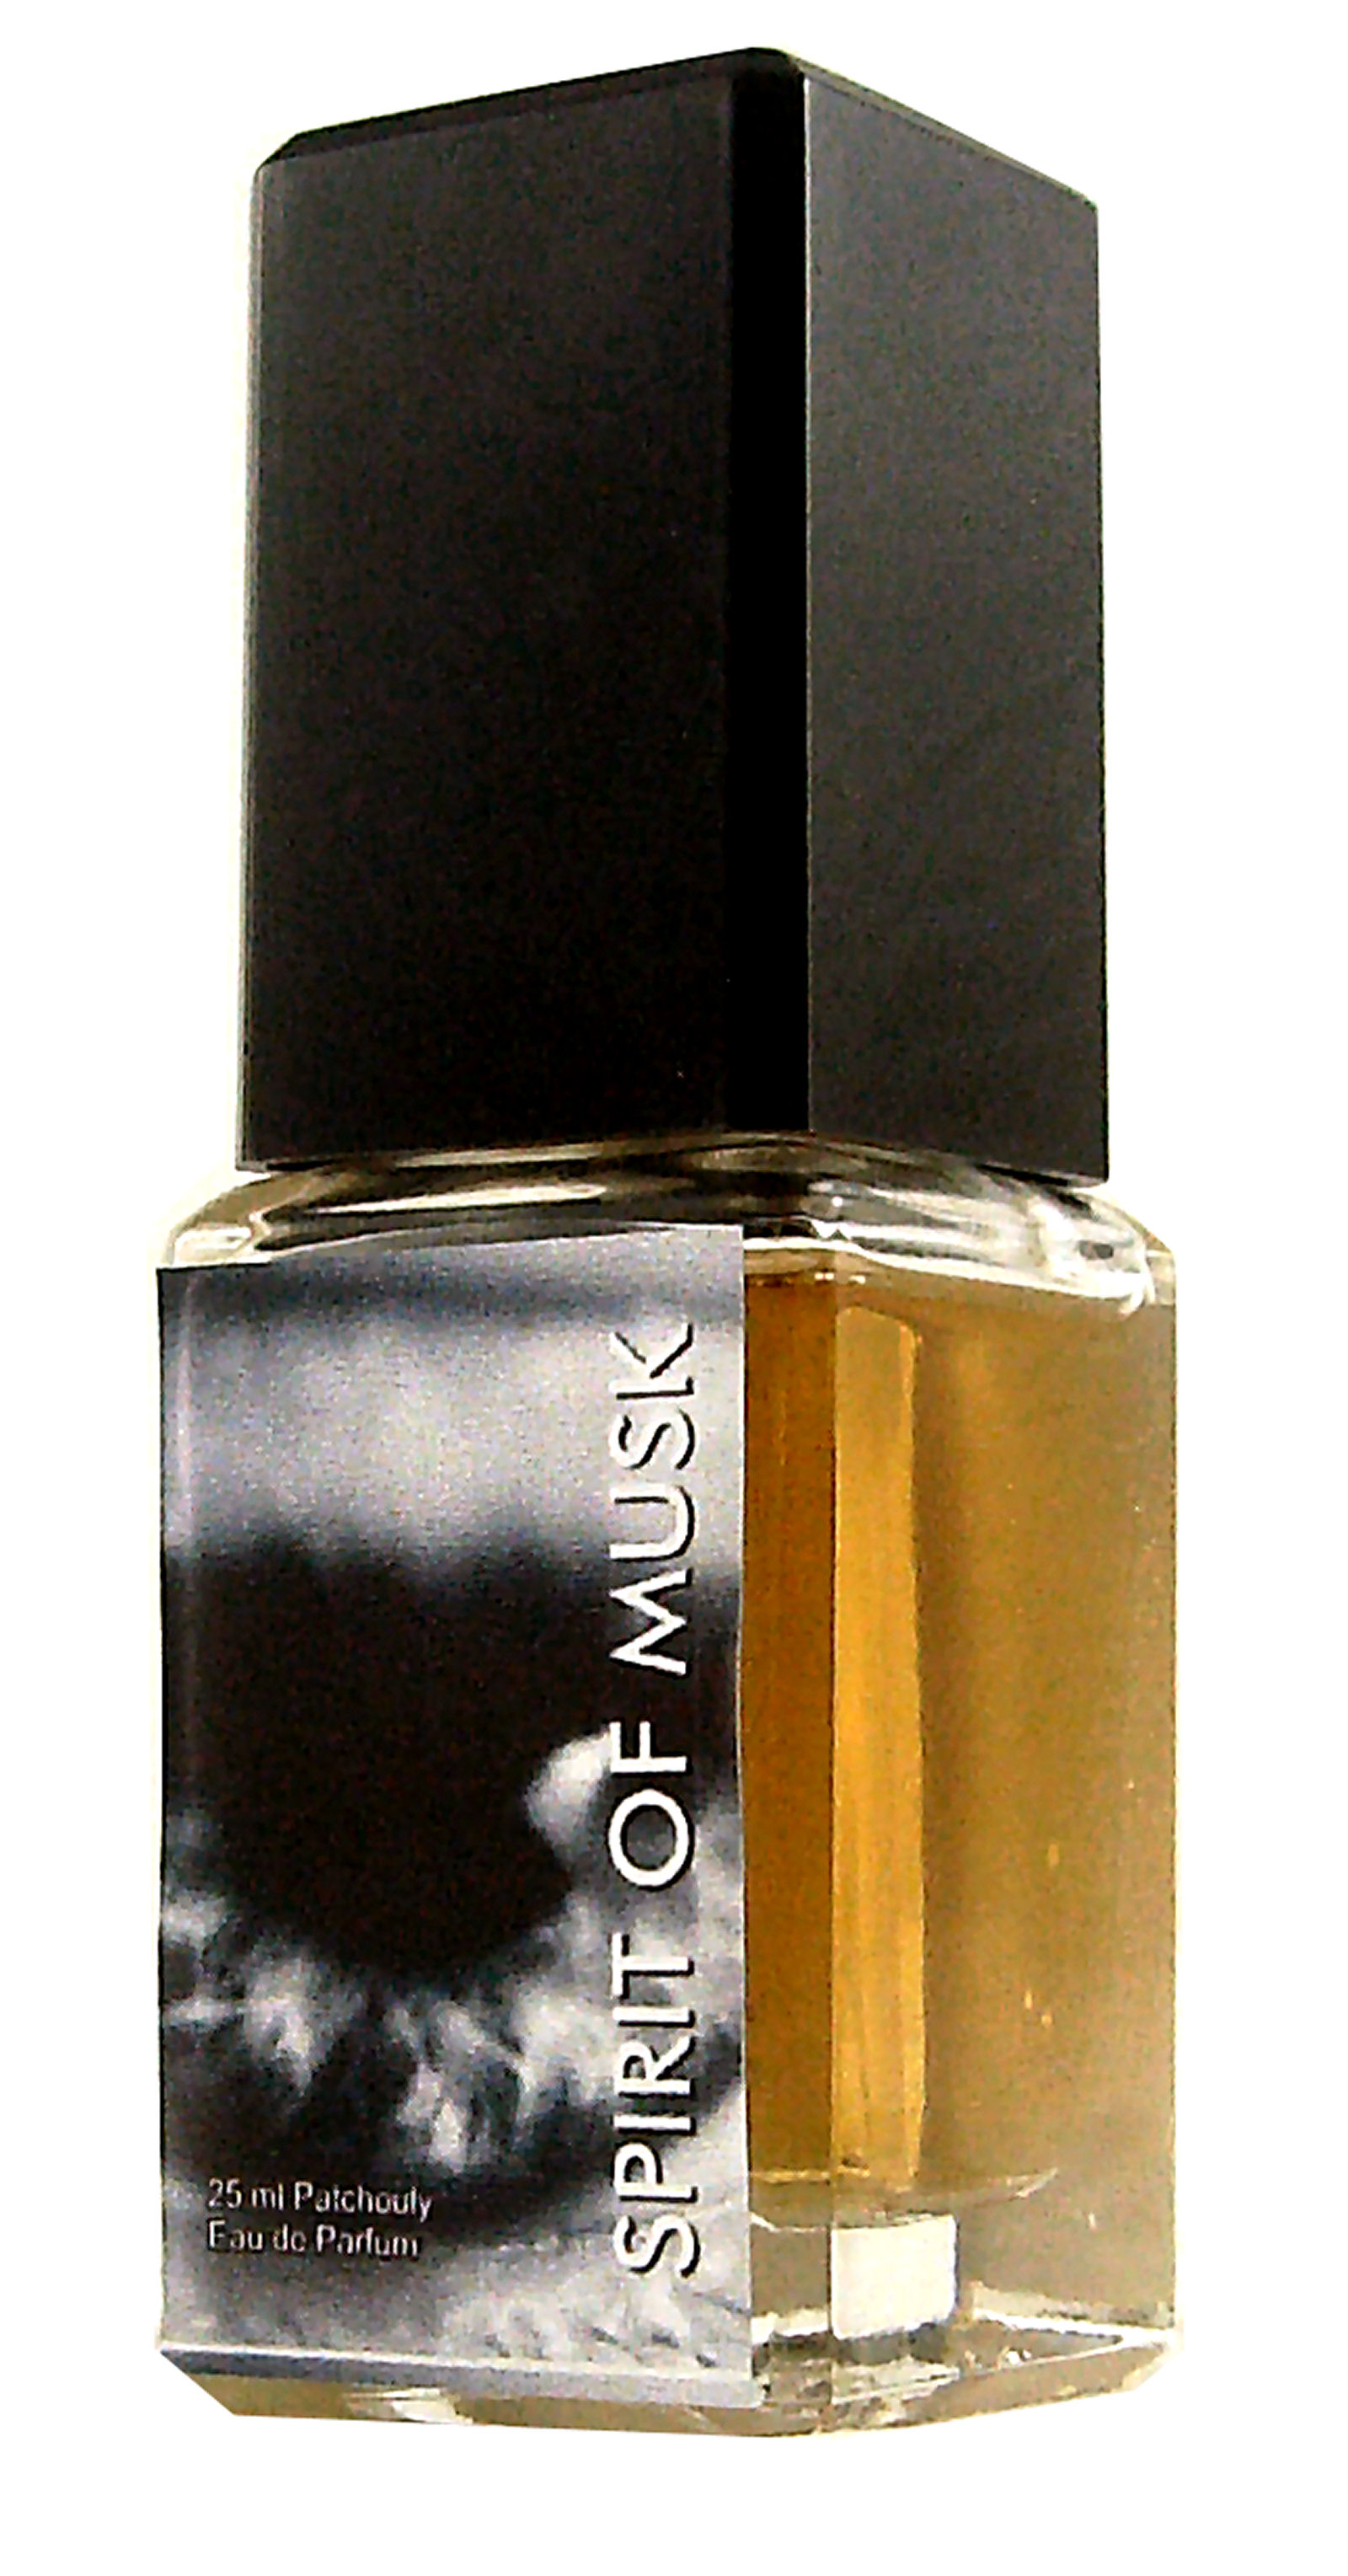 Patchouli Spirit Of Musk, Eau de Parfum 25ml